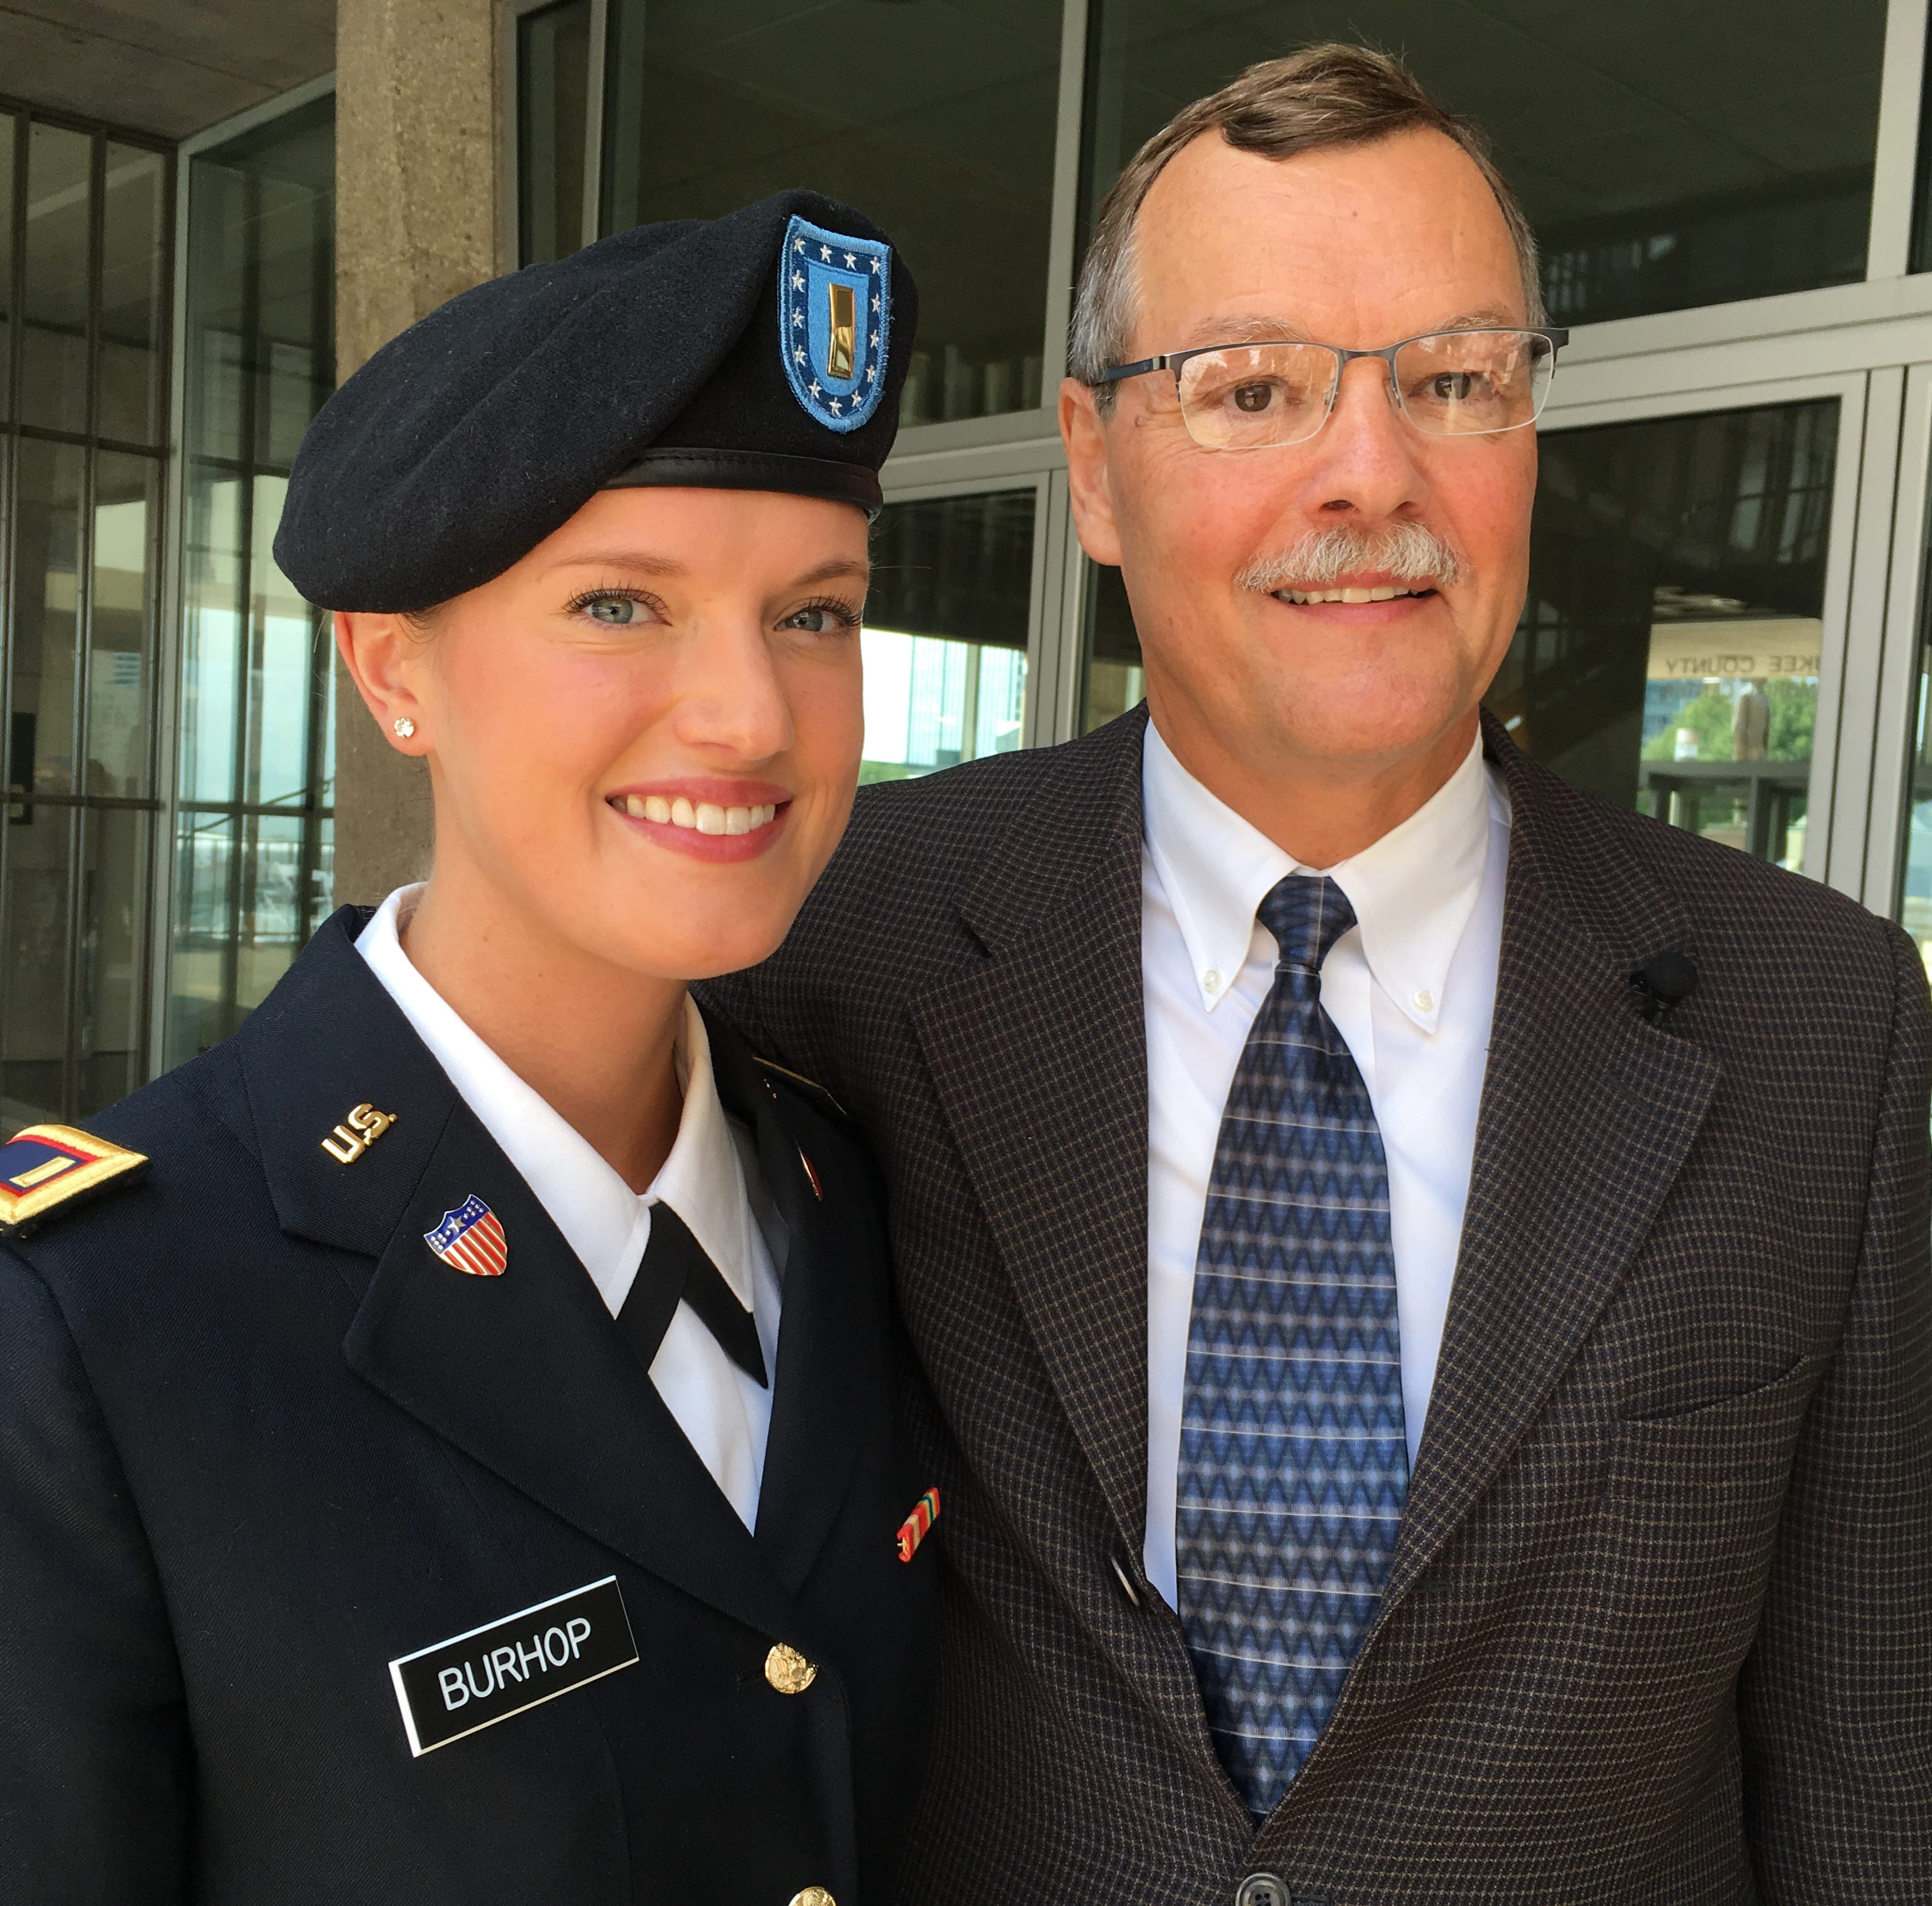 He's in the Army now: 60-year-old Wisconsin doctor joins military